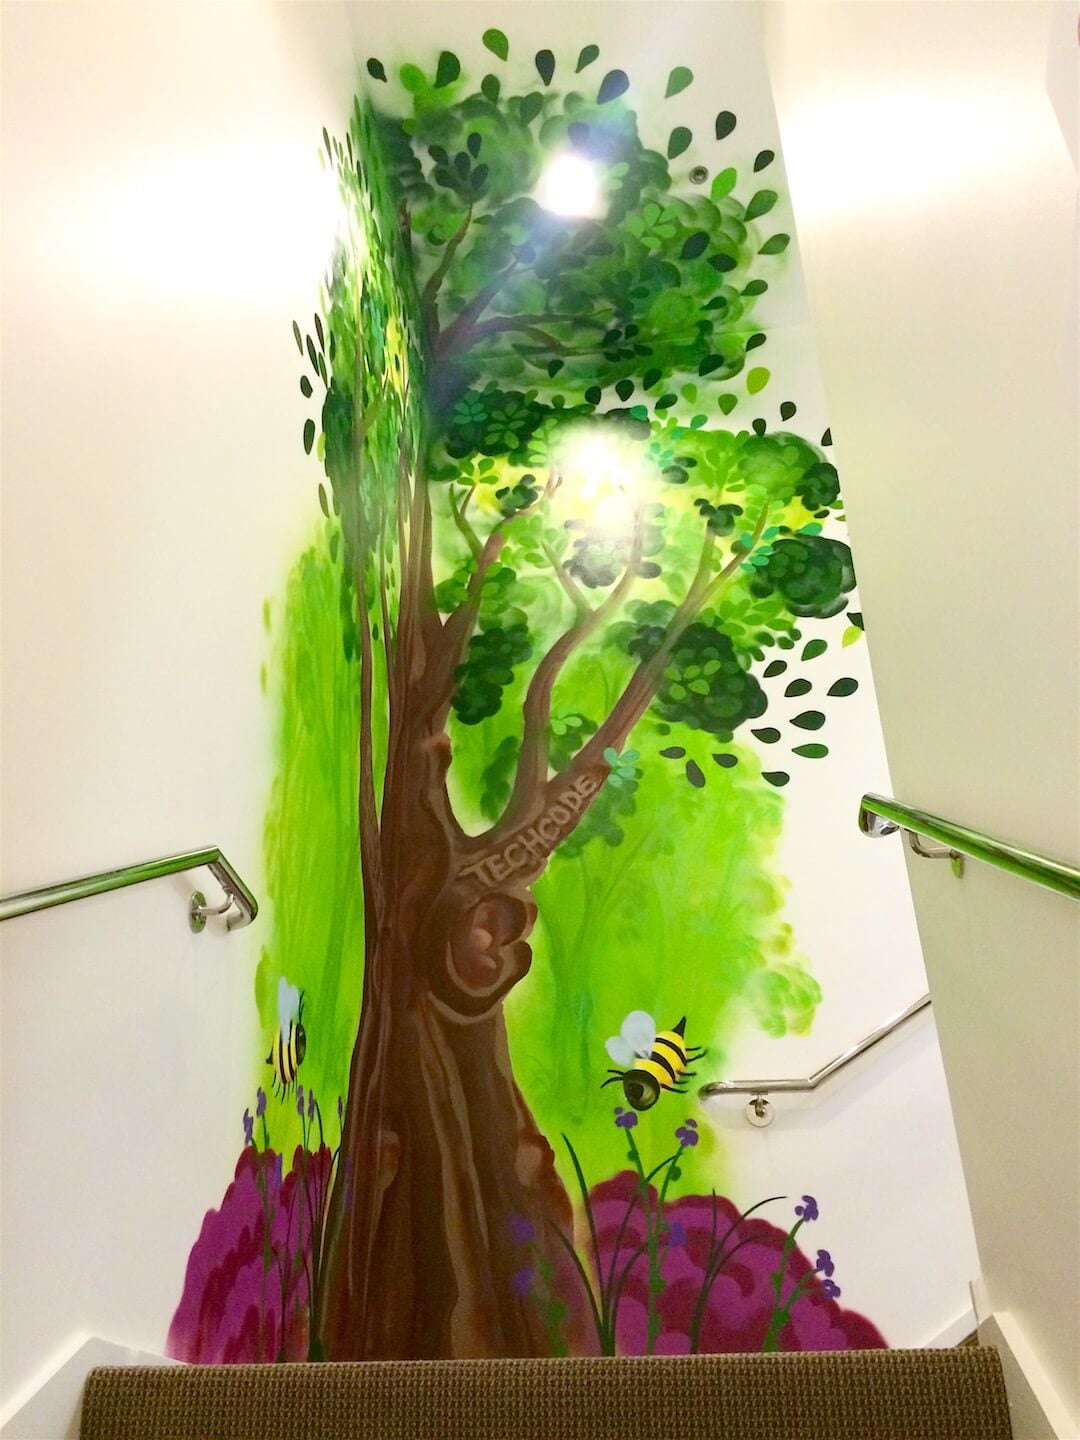 Commissioned Office Mural 3 for Techcode | Mountain View USA, 2015